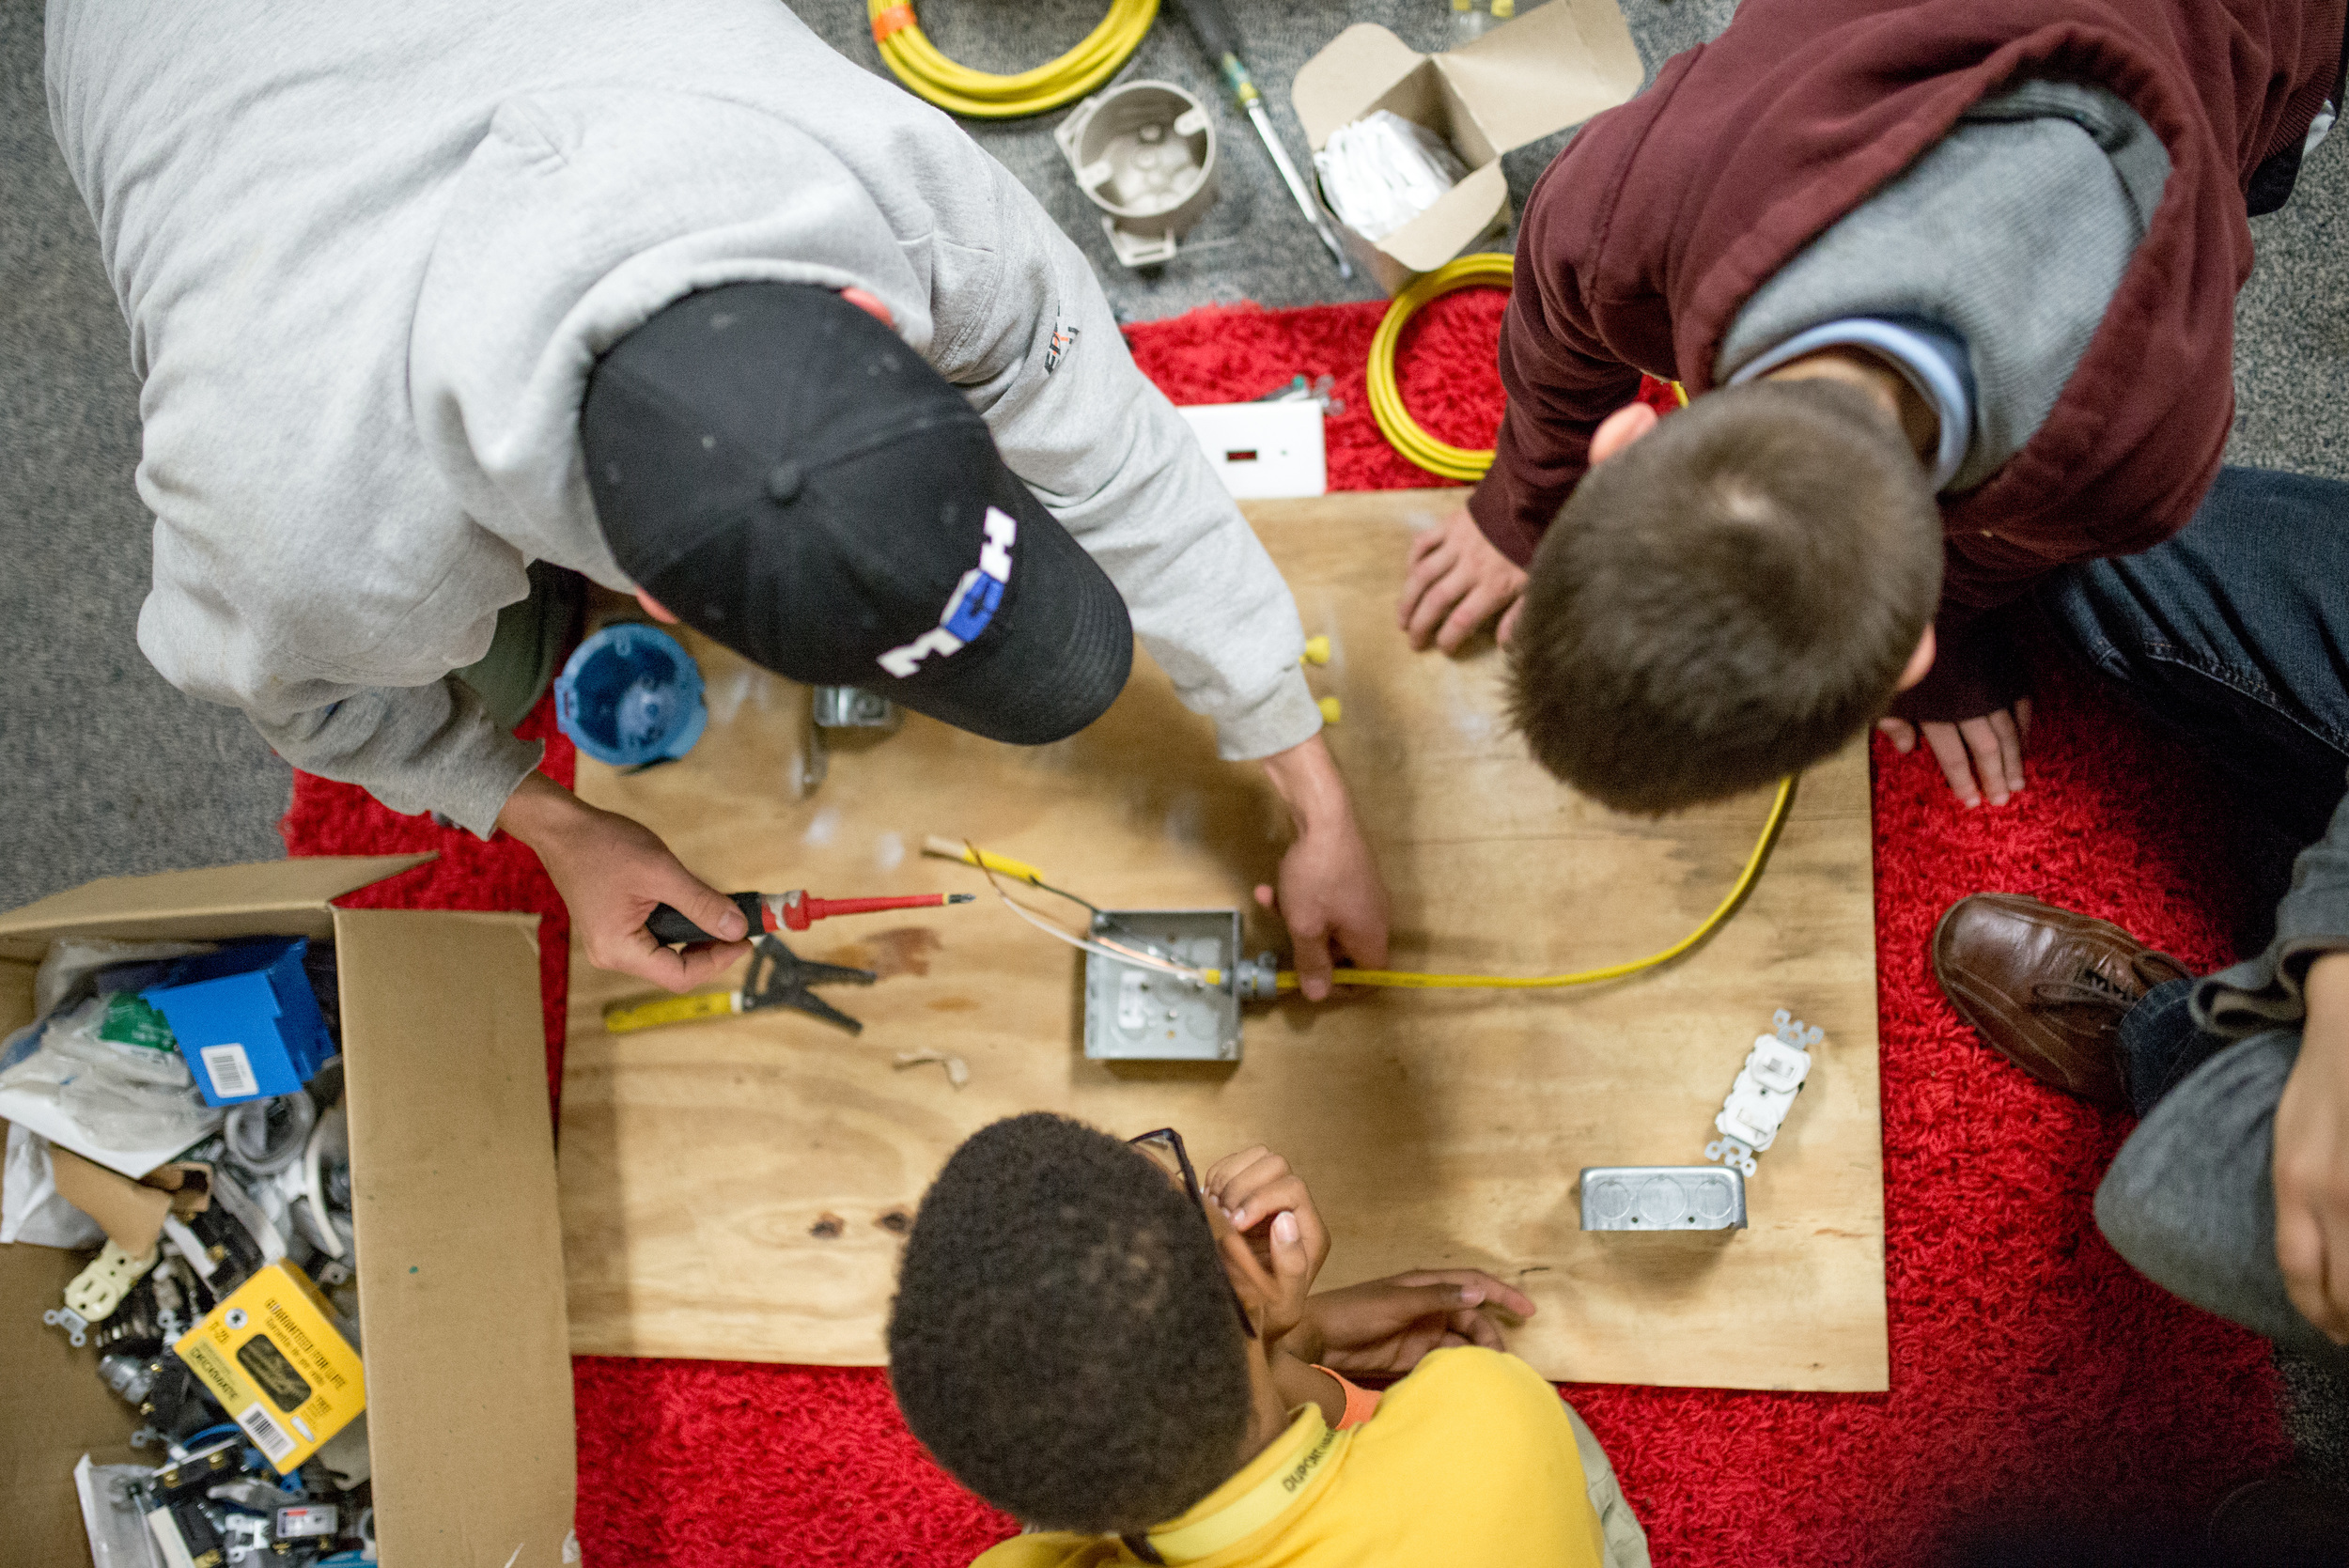 Electrician Tim Sherrod works with students at our after school program to show them the basics of how wiring electricity works--one of the many options kids have to learn practical skills through our programs.